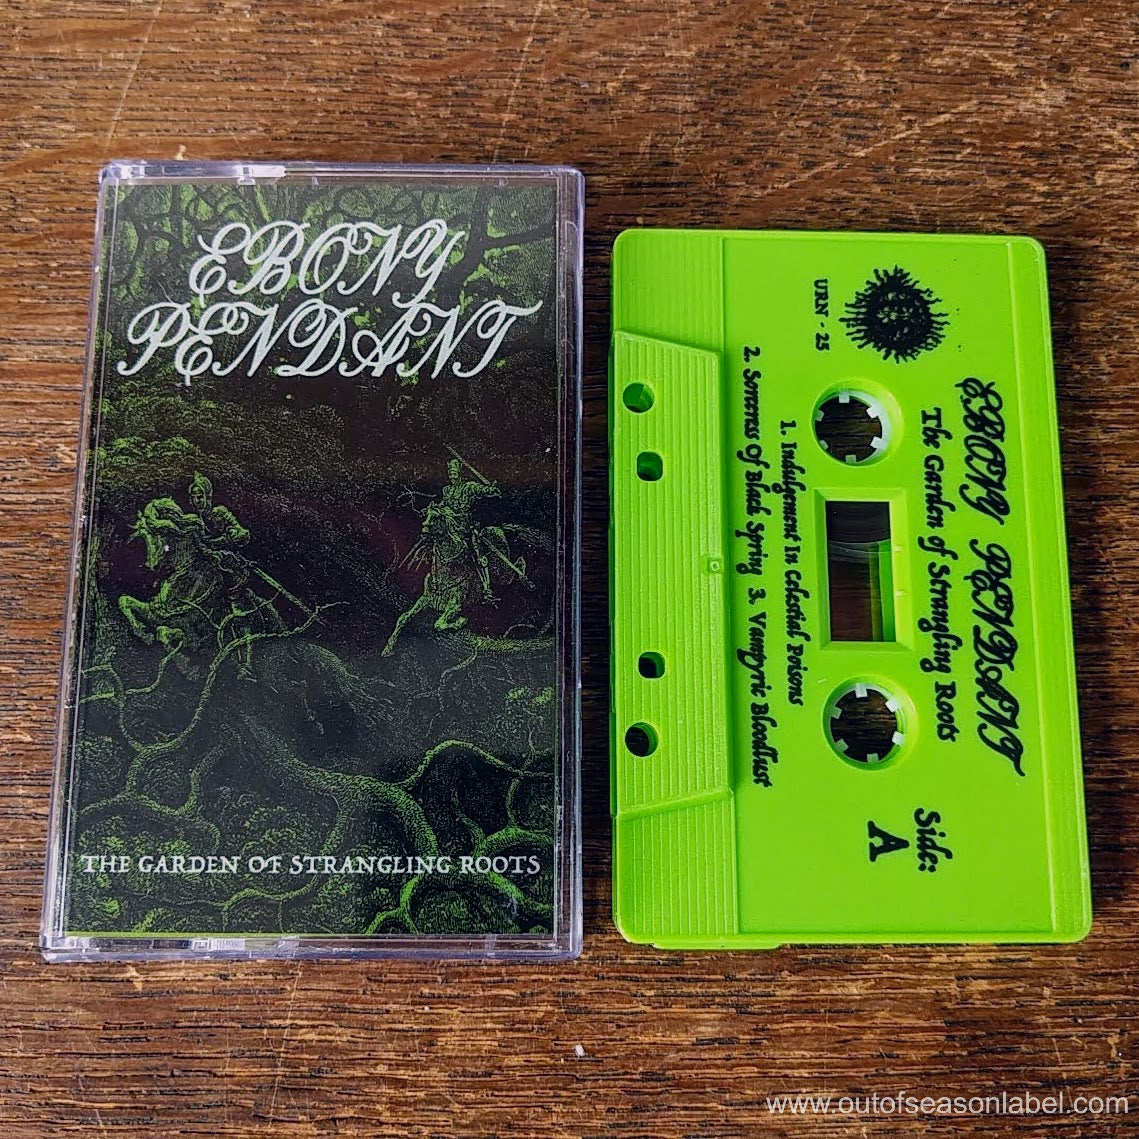 "[SOLD OUT] EBONY PENDANT ""The Garden of Strangling Roots"" Cassette Tape"